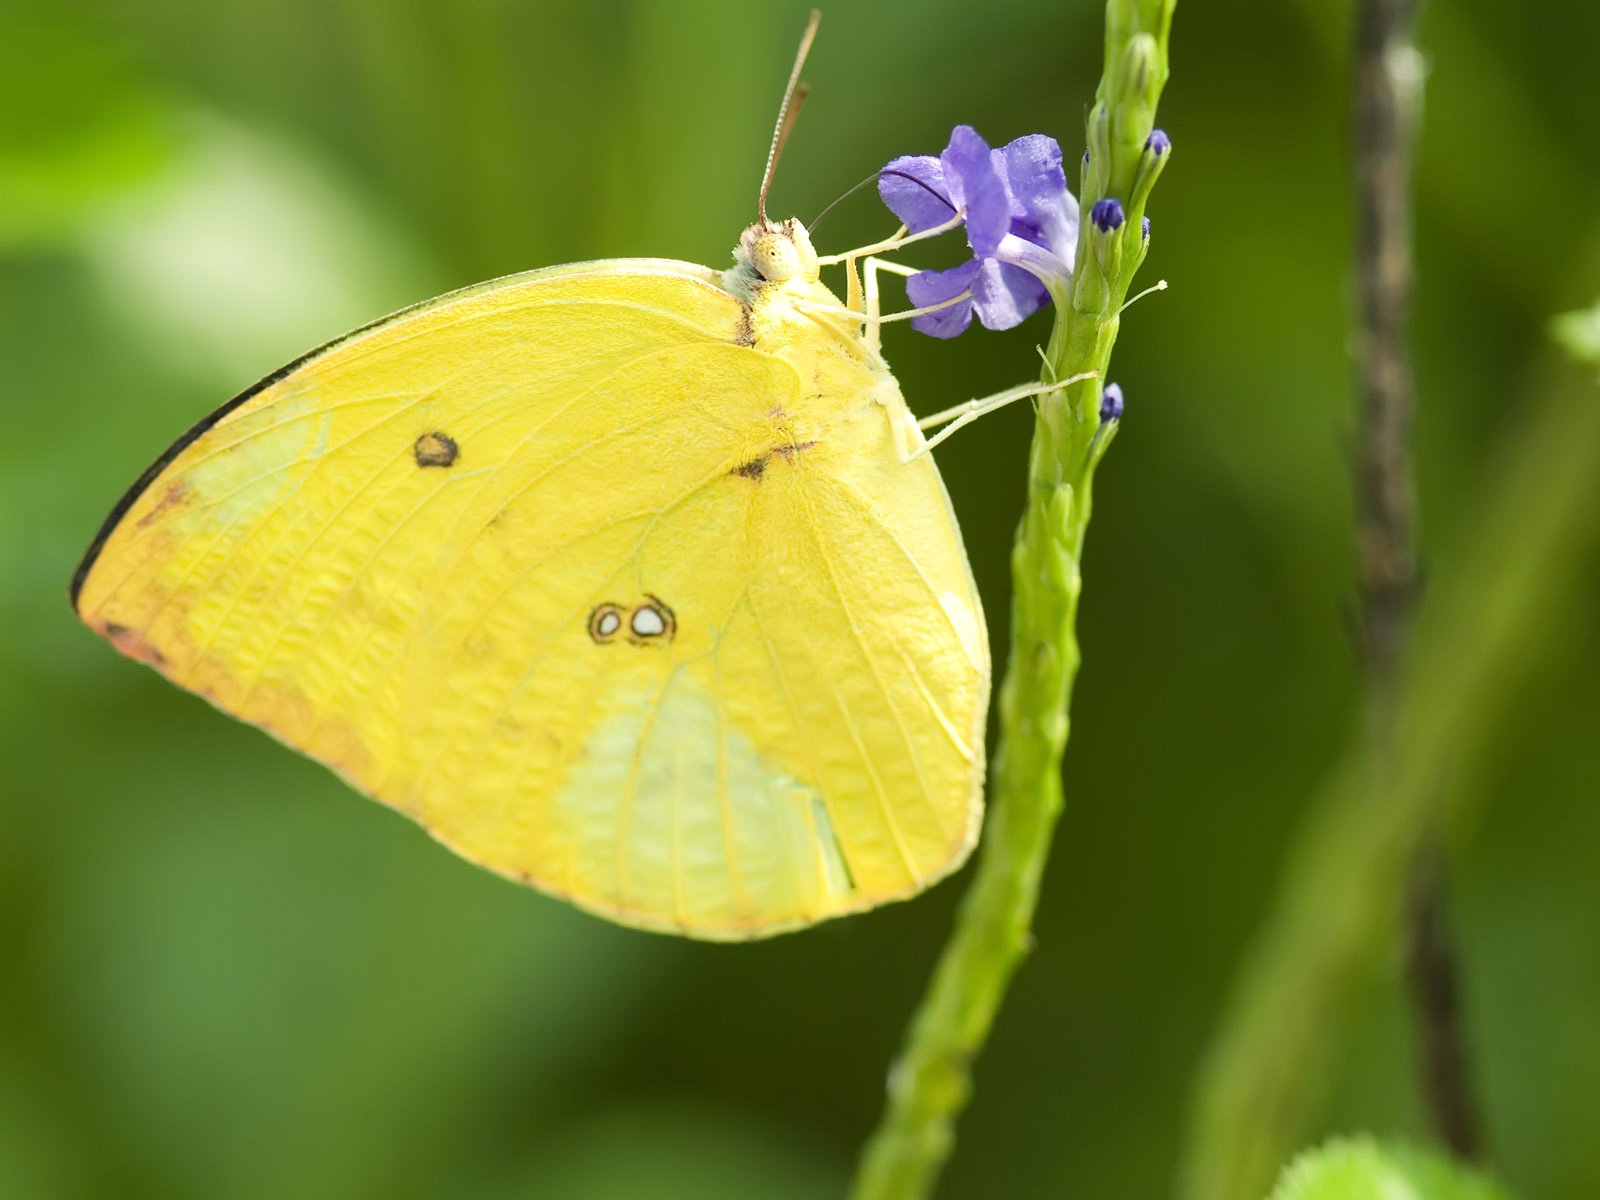 hd wallpapers yellow butterfly